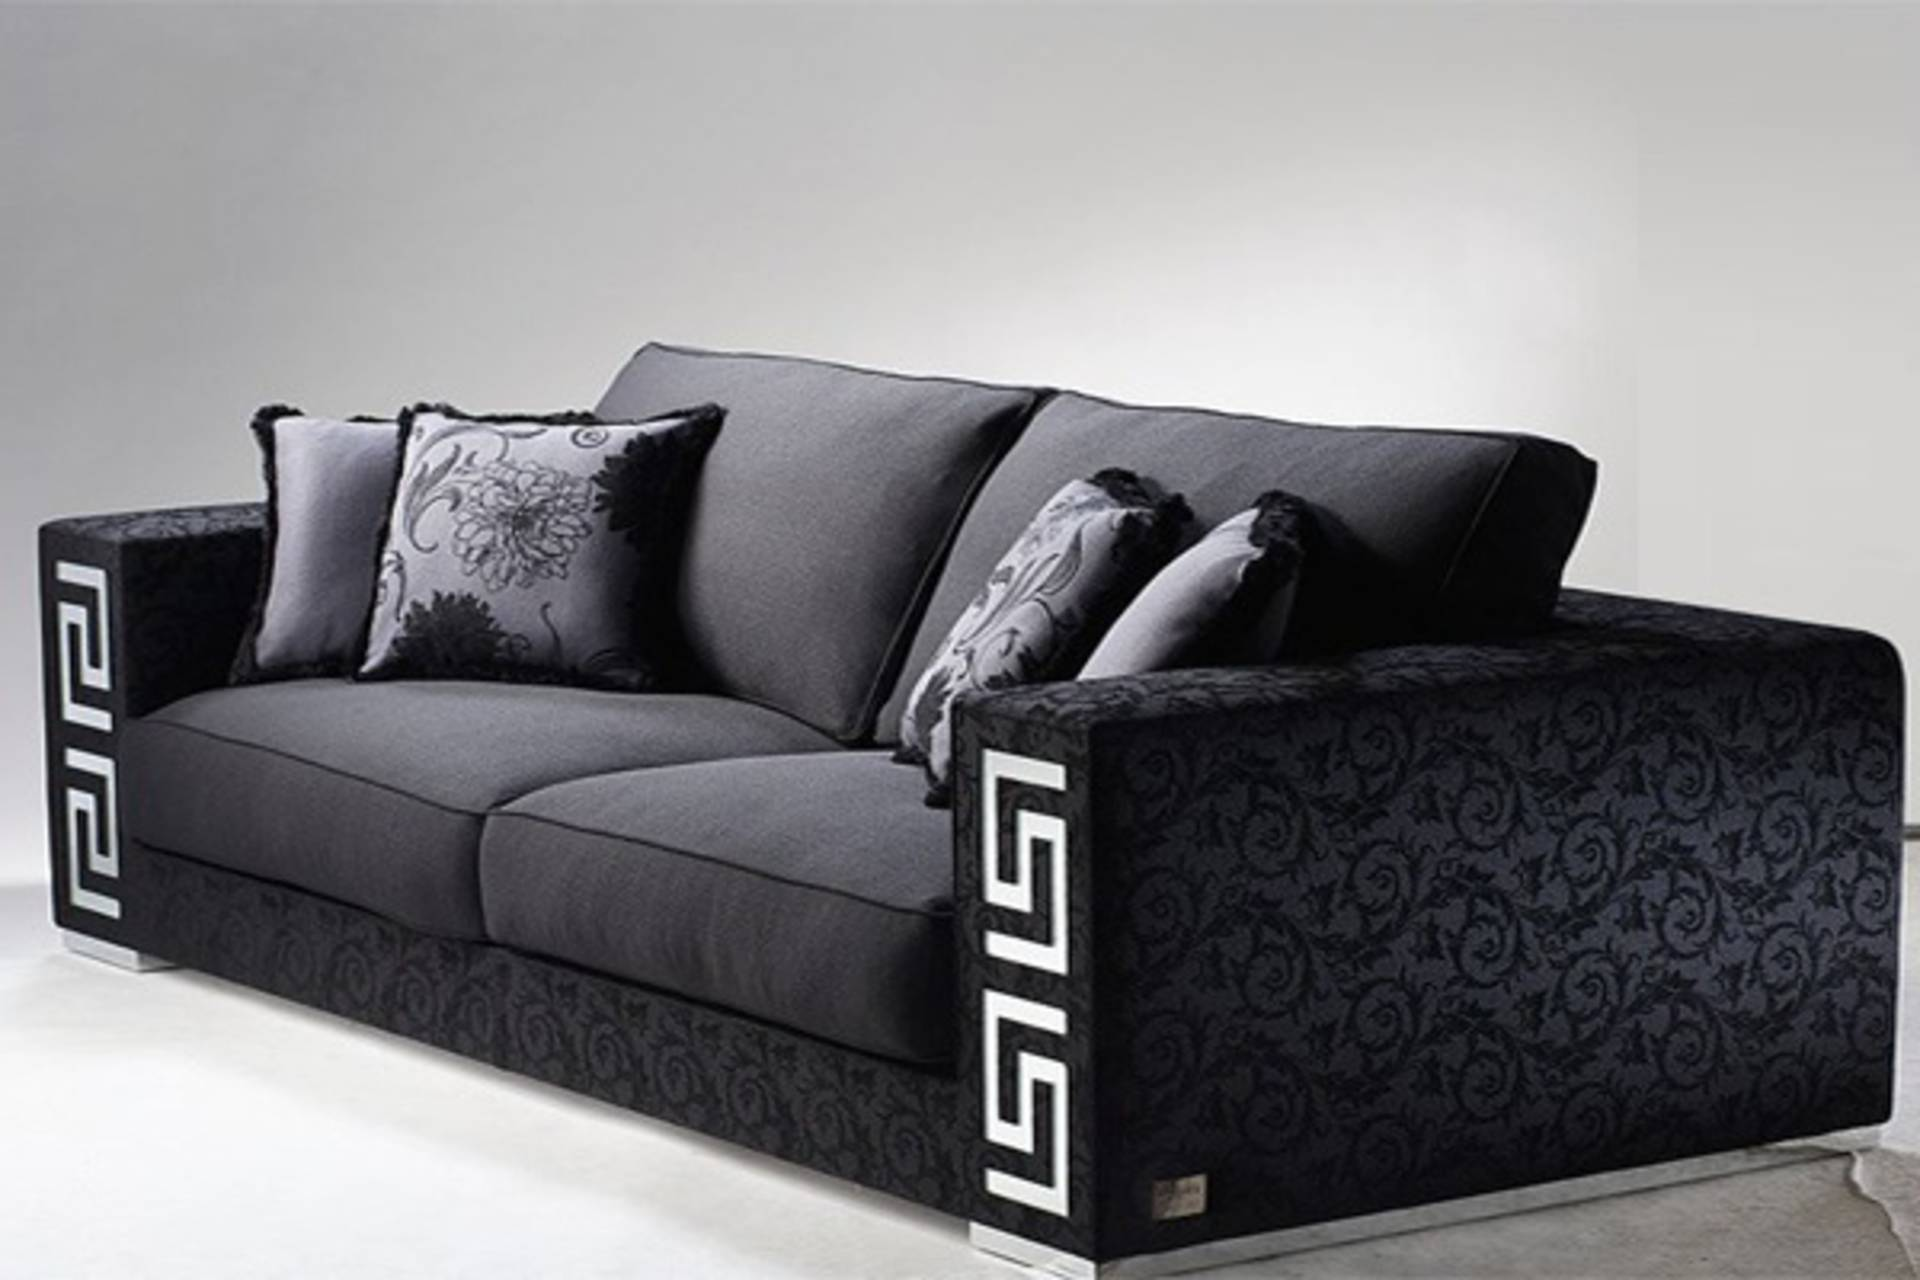 Versace Sofa Collection For Your Living Room